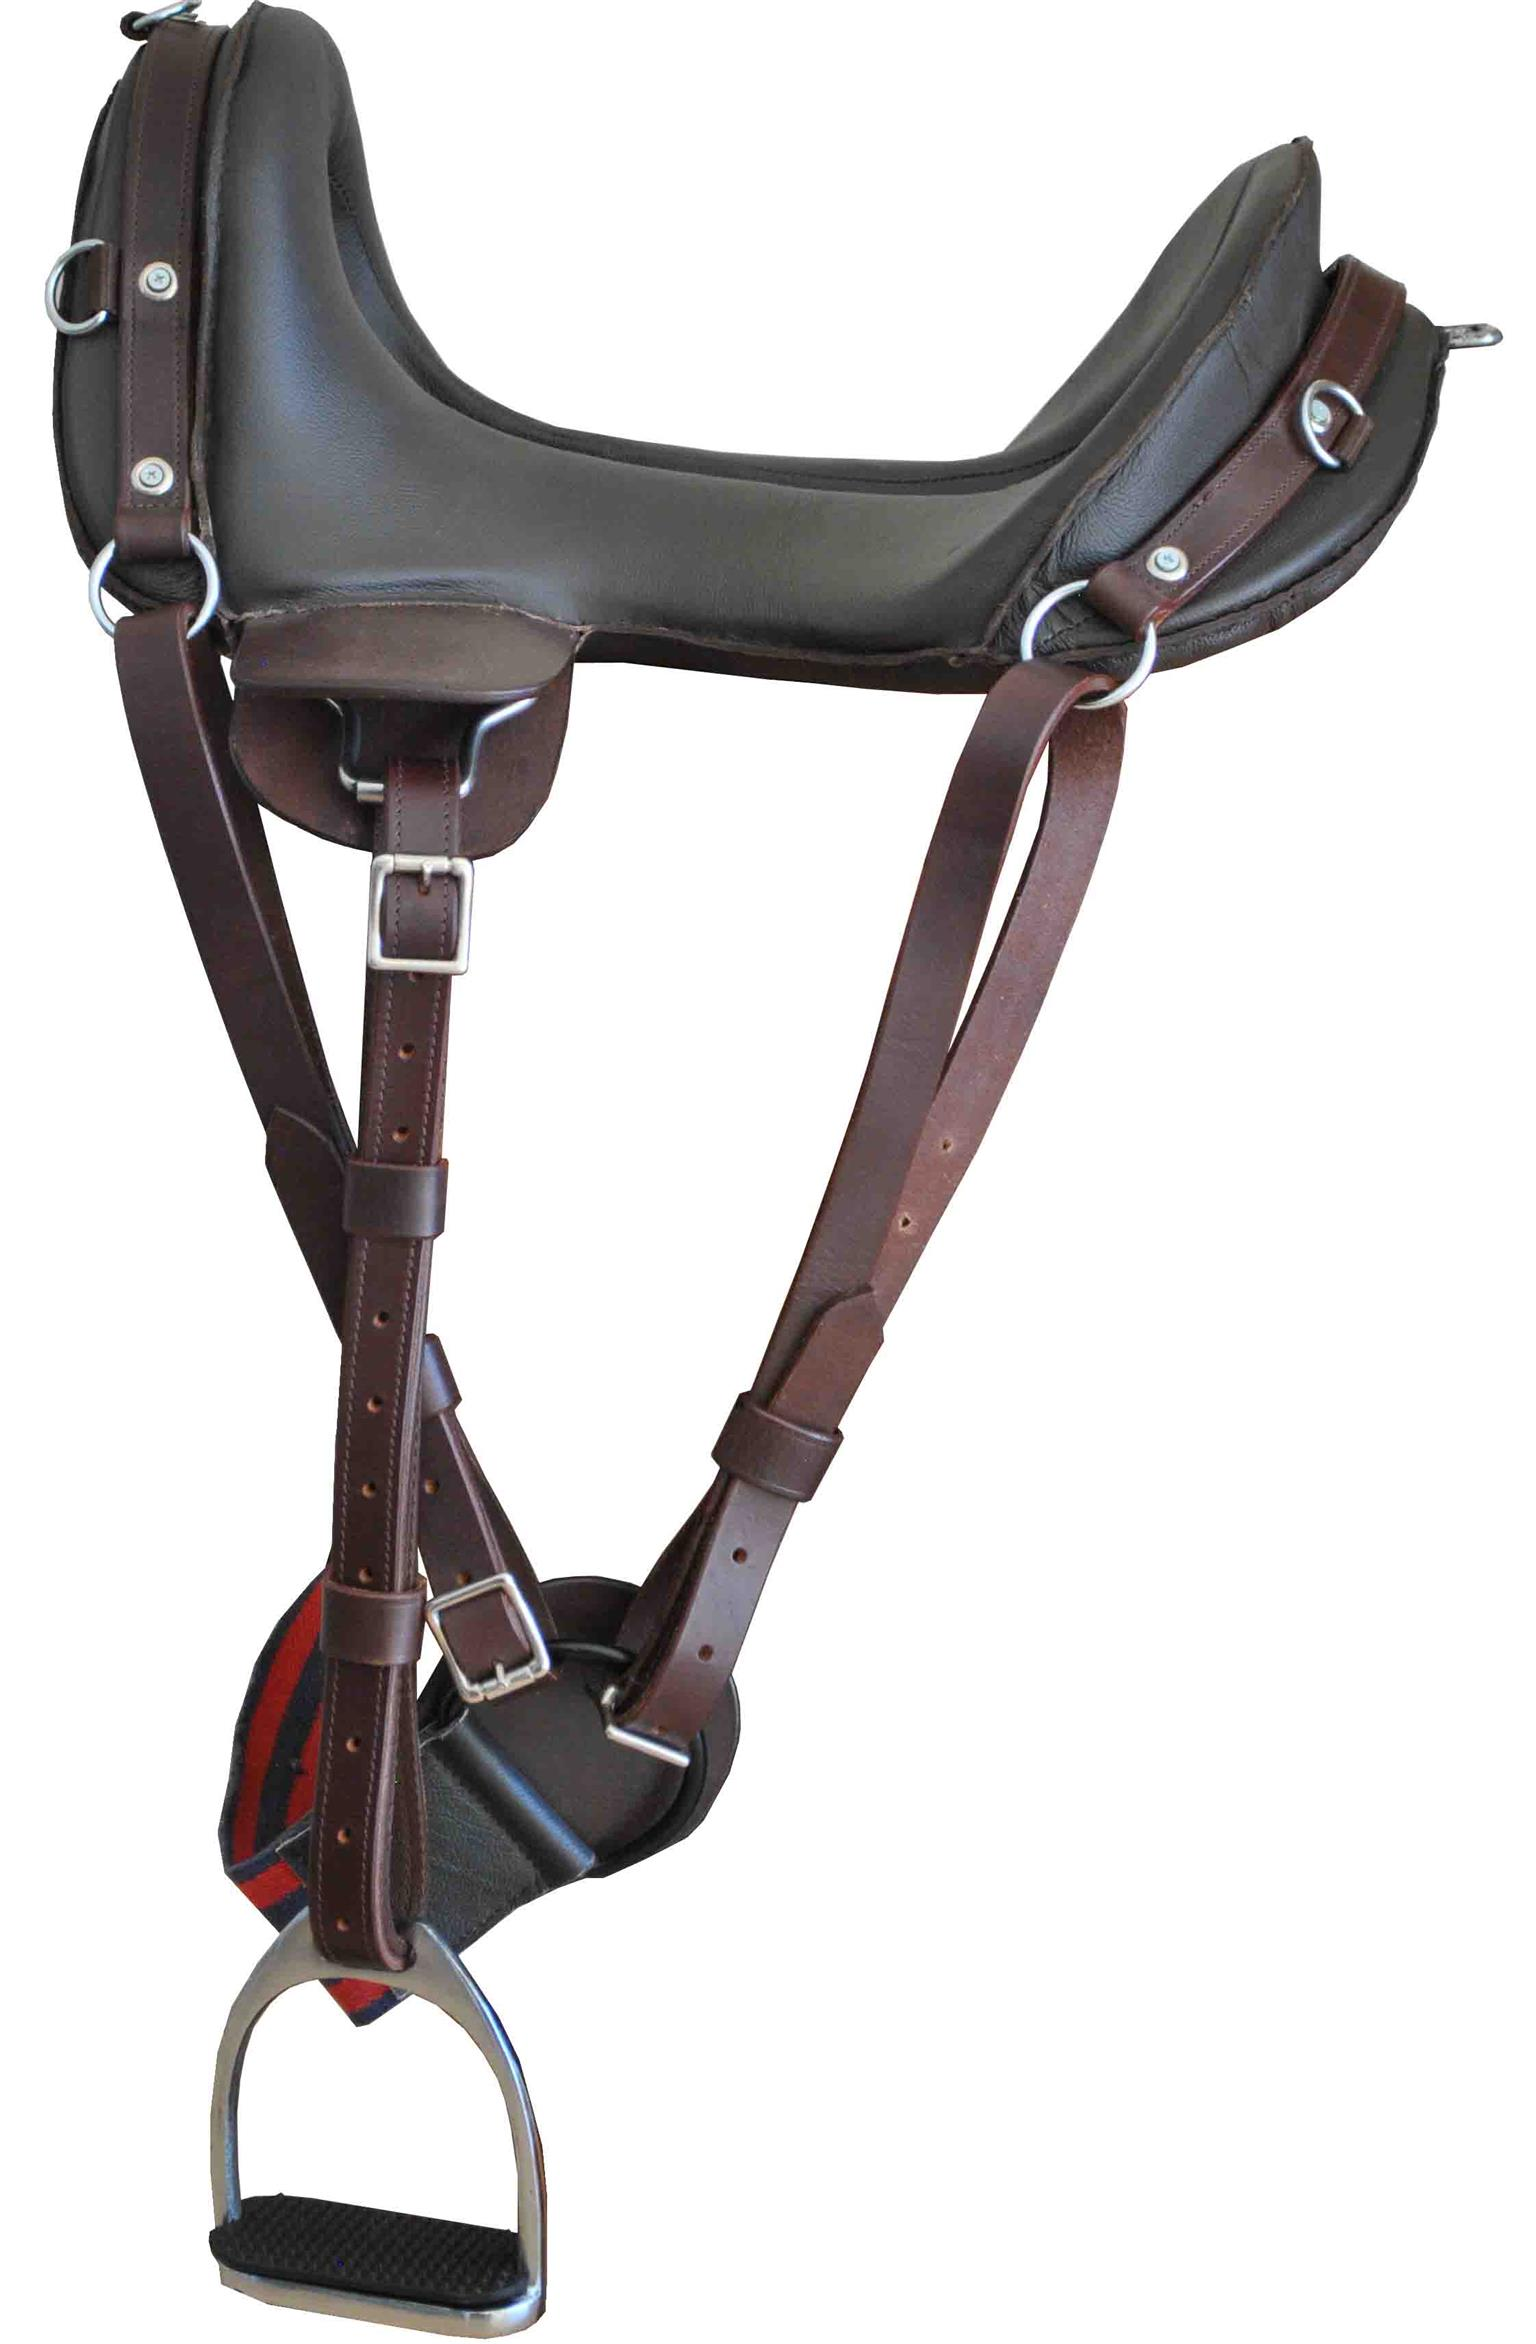 McClellan Saddle complete with stirrups & girth